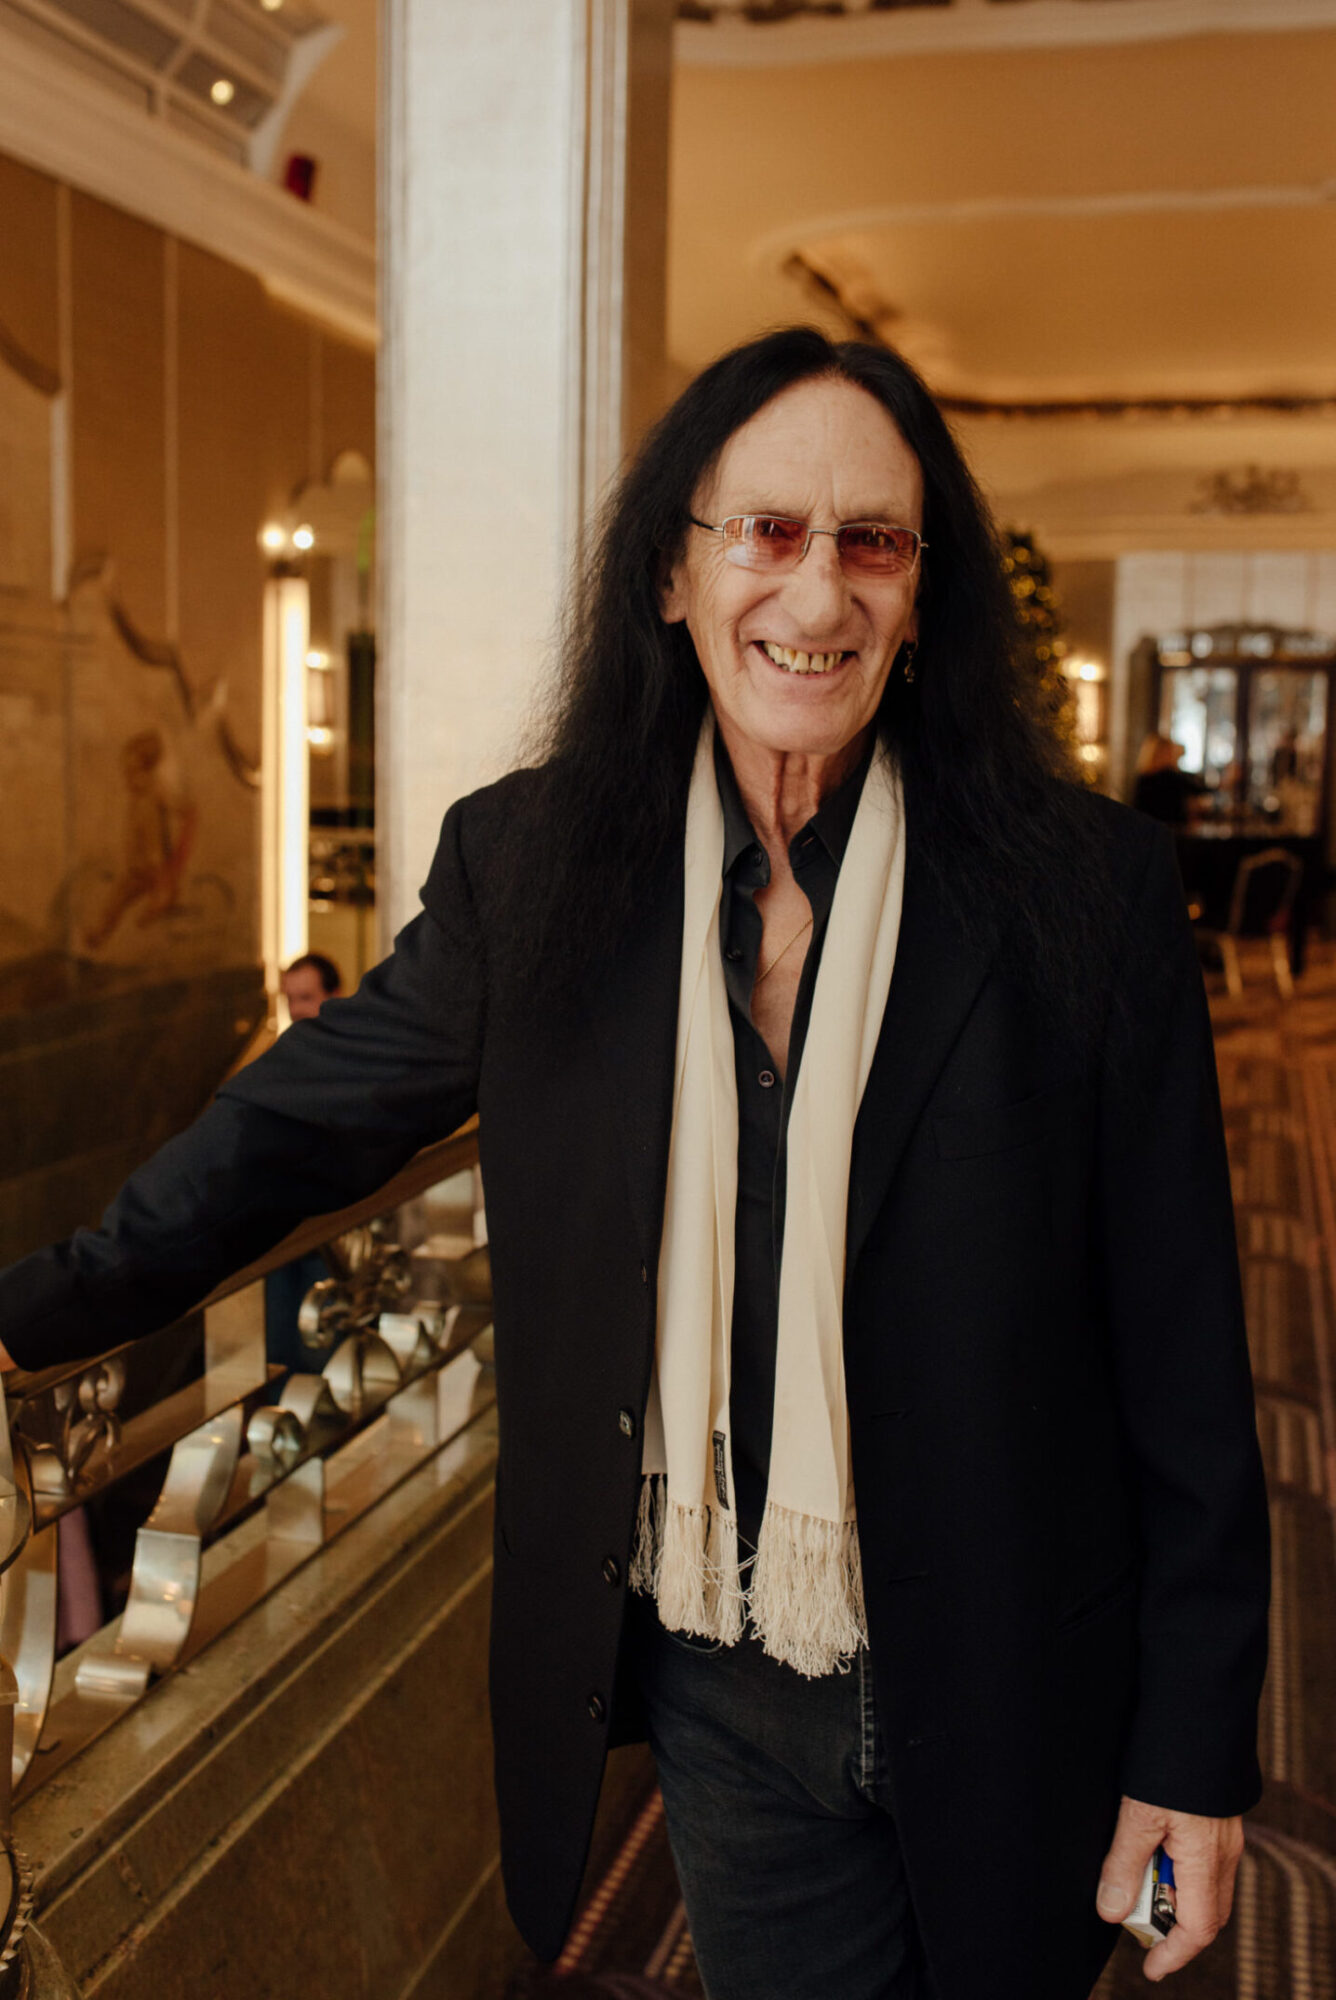 Ken Hensley / Photo: Olga Kotilevskaya